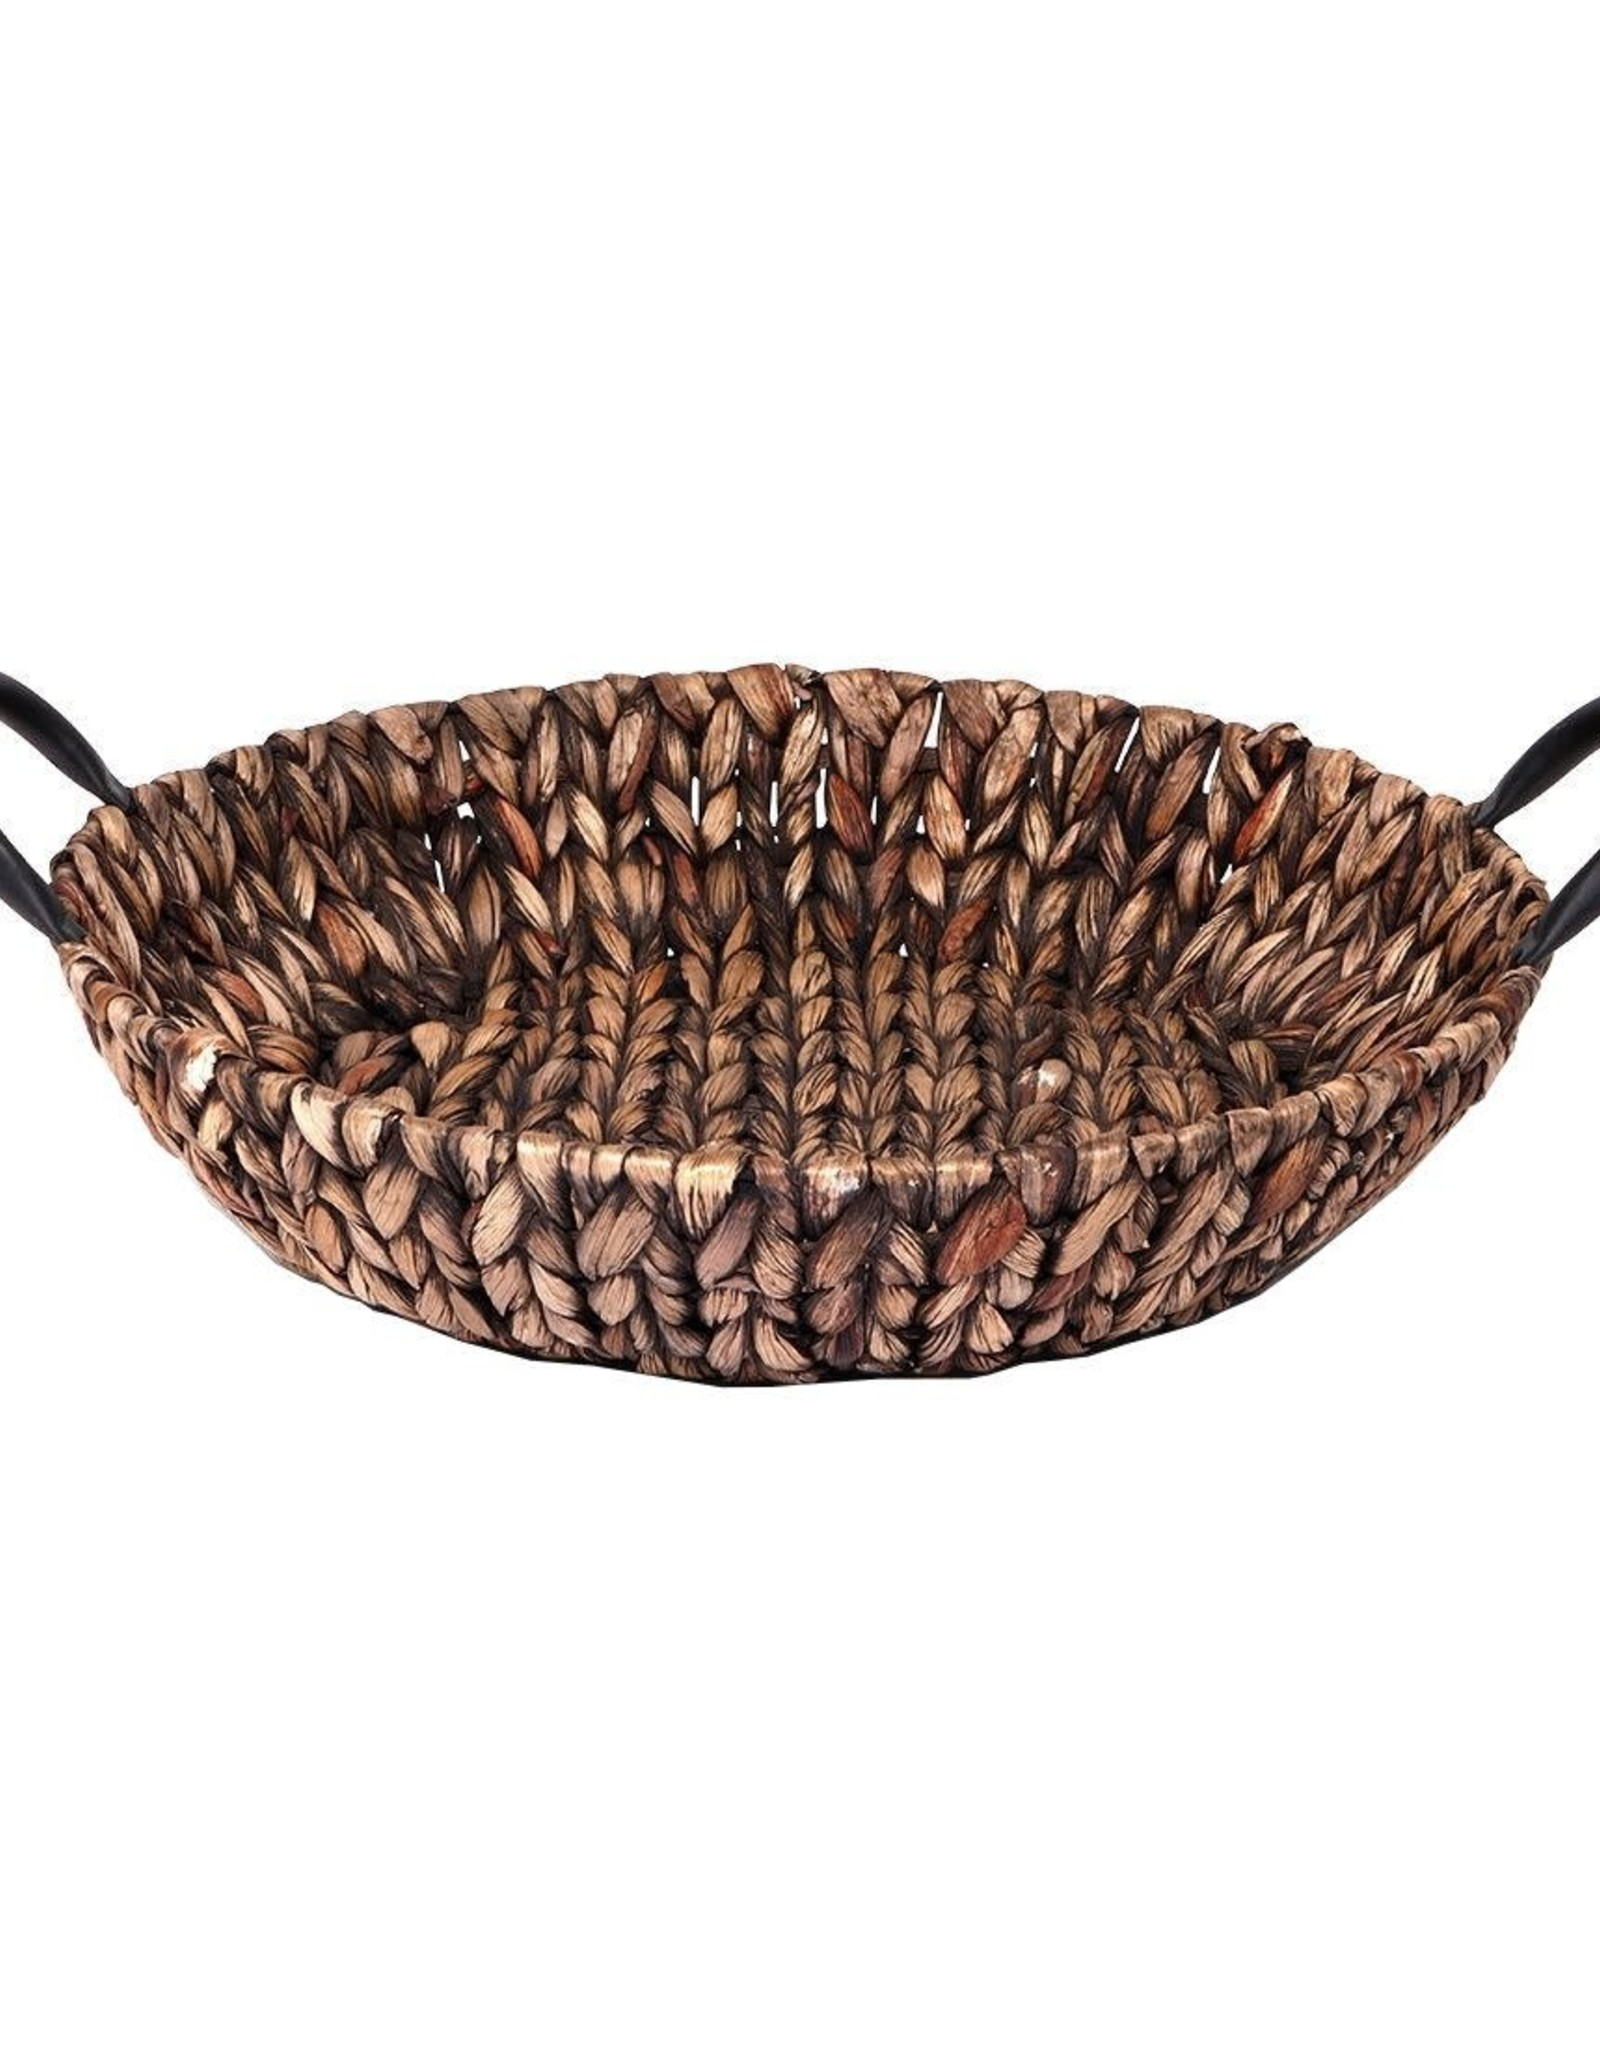 Basket Bram with Handles 46cm